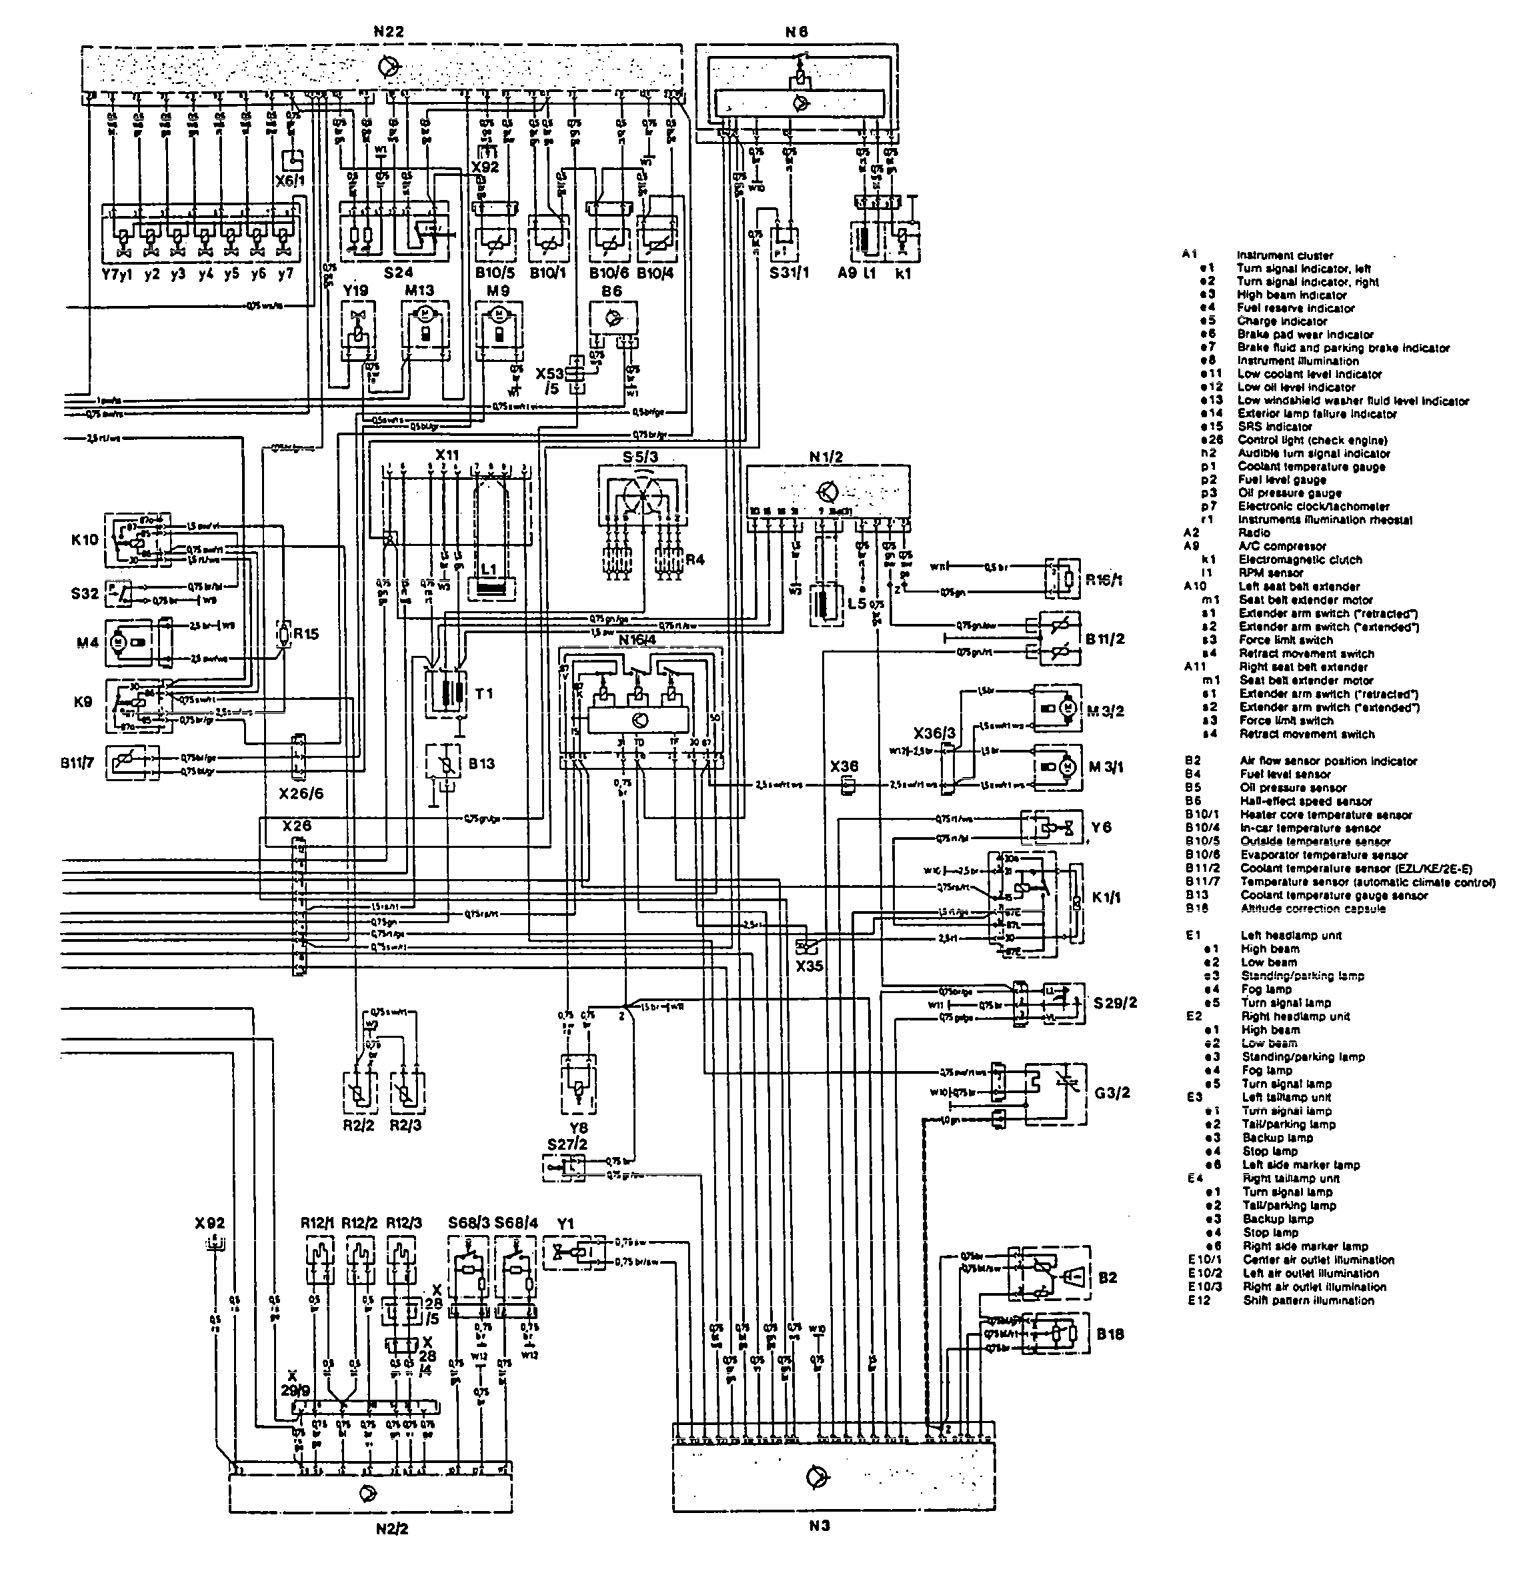 mercedes-benz 300ce  1992 - 1993  - wiring diagrams